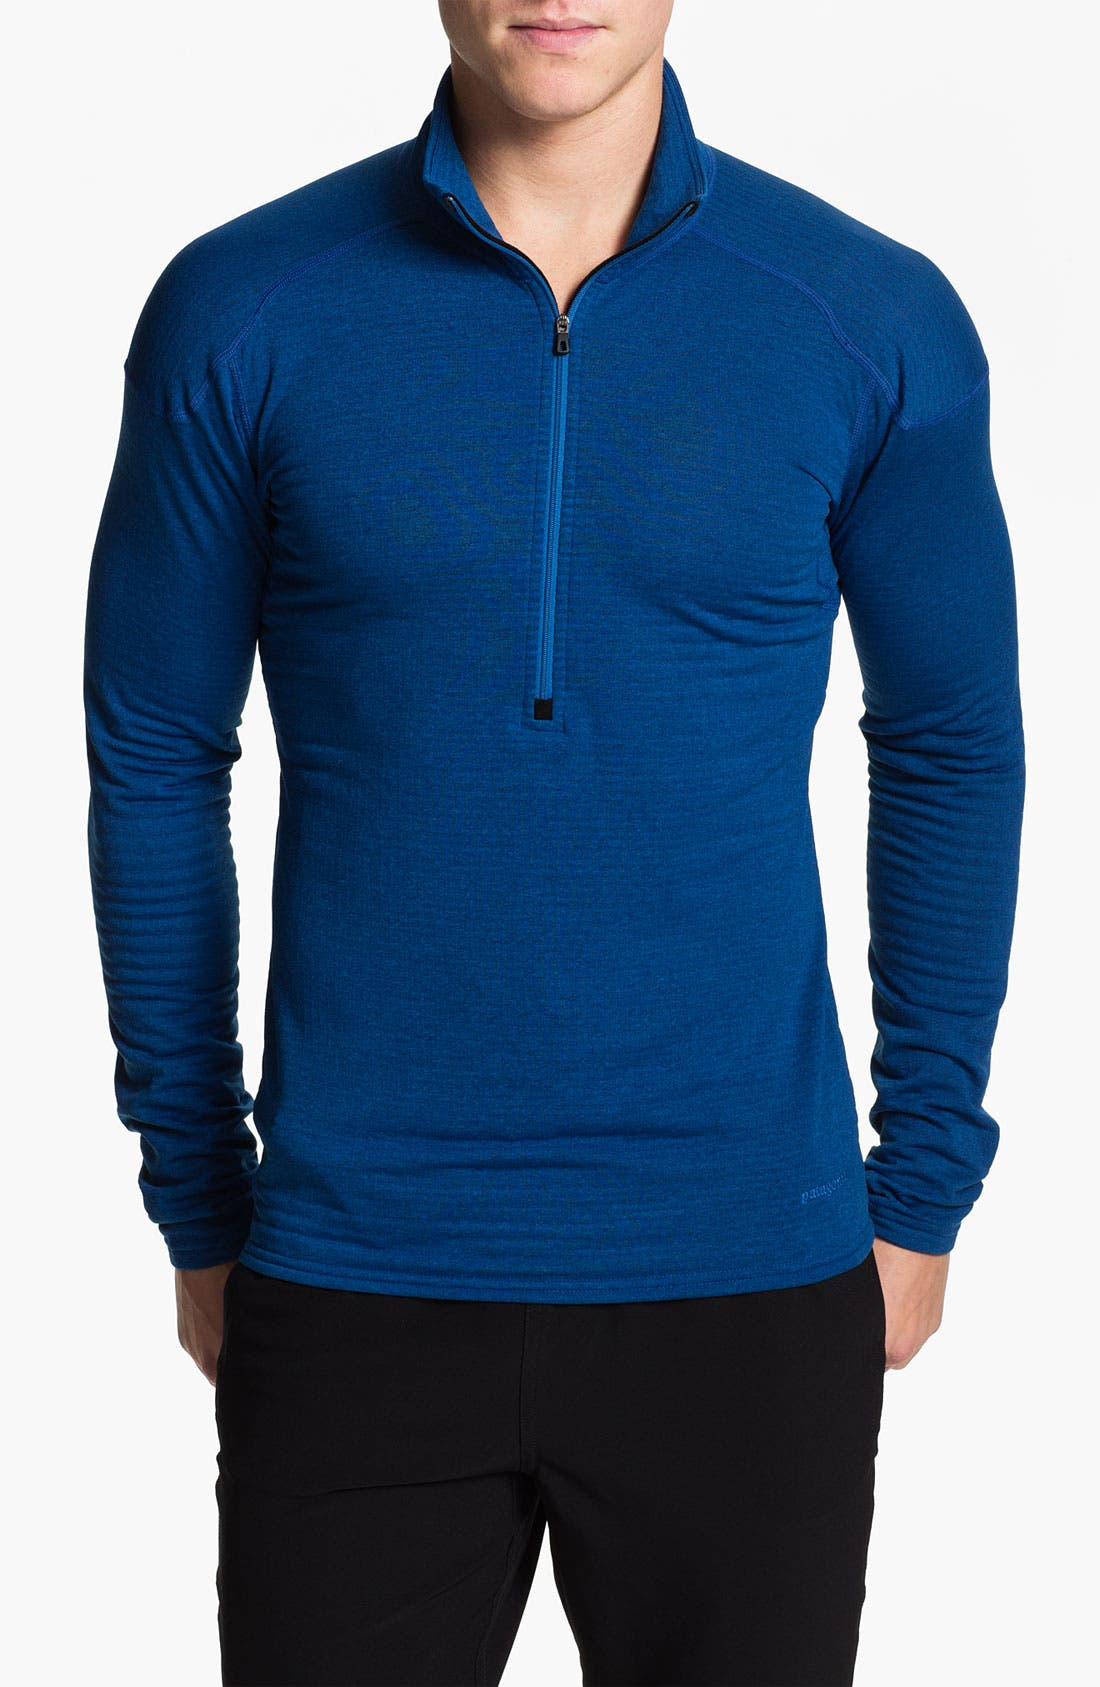 Alternate Image 1 Selected - Patagonia 'Capilene® 4' Expedition Weight Zip Neck Top (Online Only)